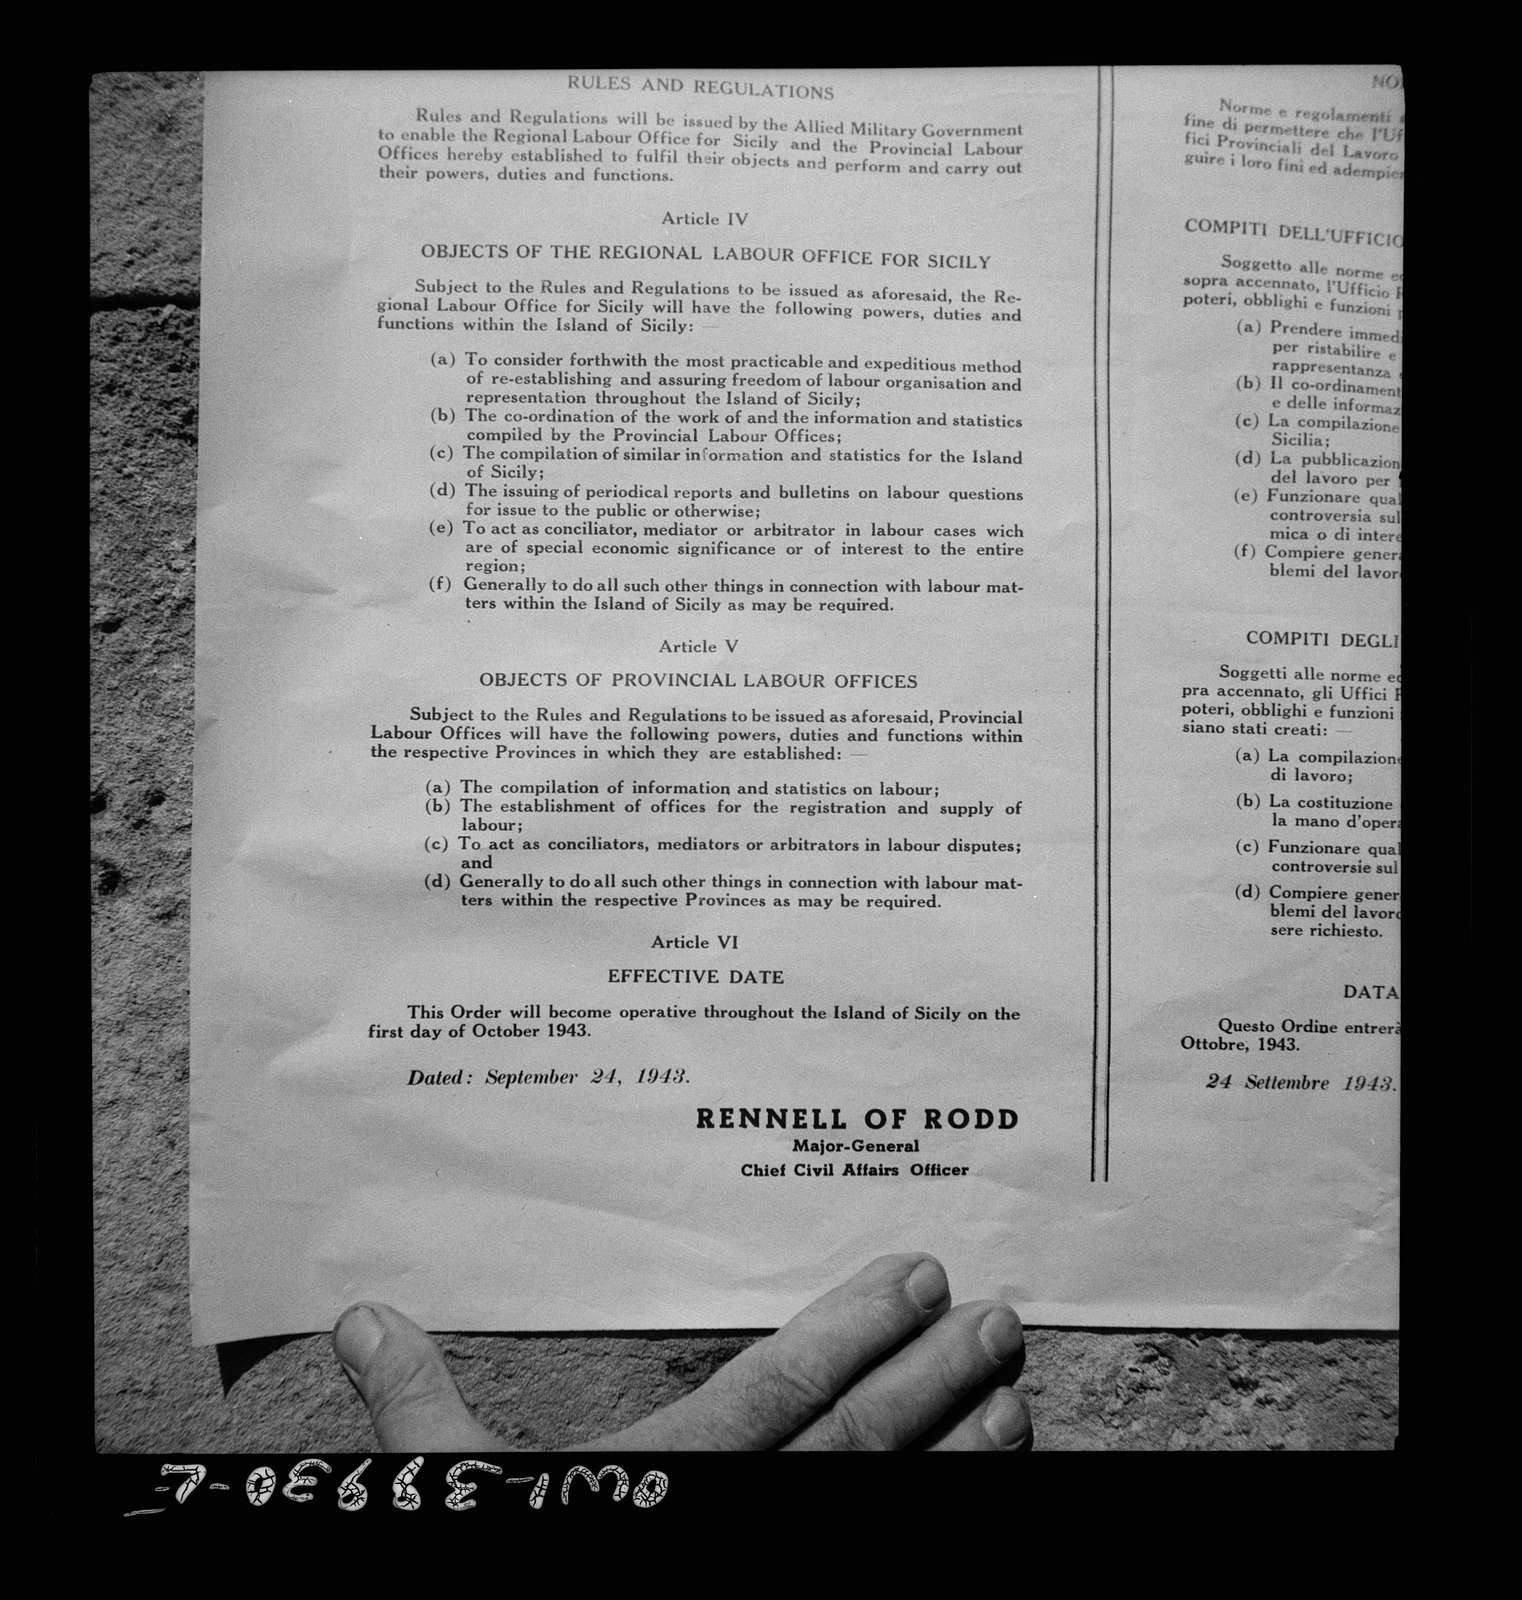 Notice of labor regulations established by the Allied military government for Sicilians